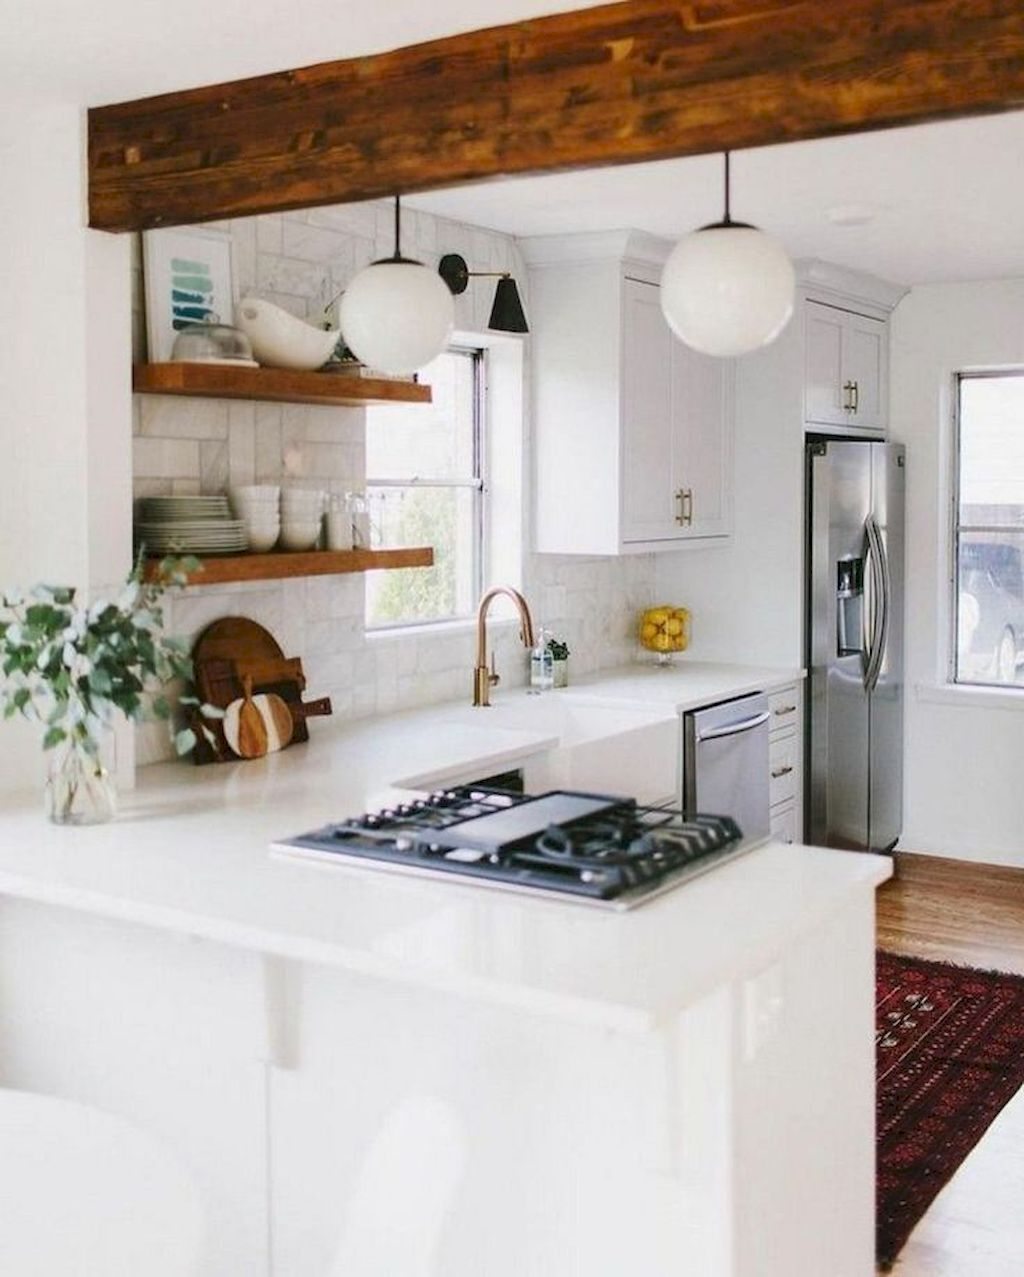 Kitchen Plan And Design For Small Room (87)